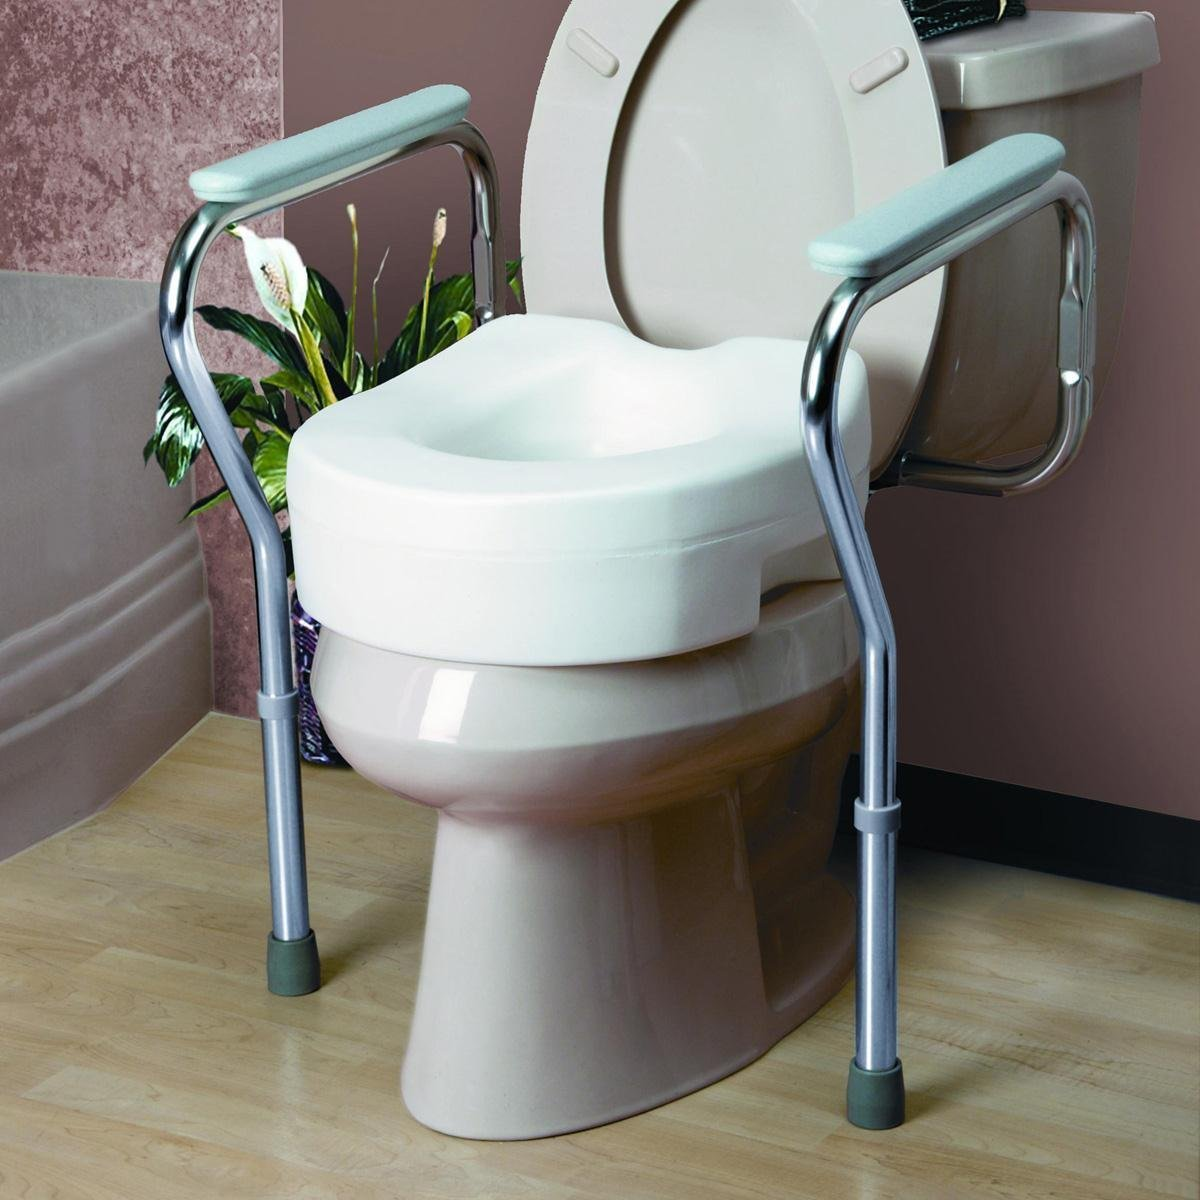 Cushioned Toilet Seats | Toilet Seat Padded Cushion | Inflatable Toilet